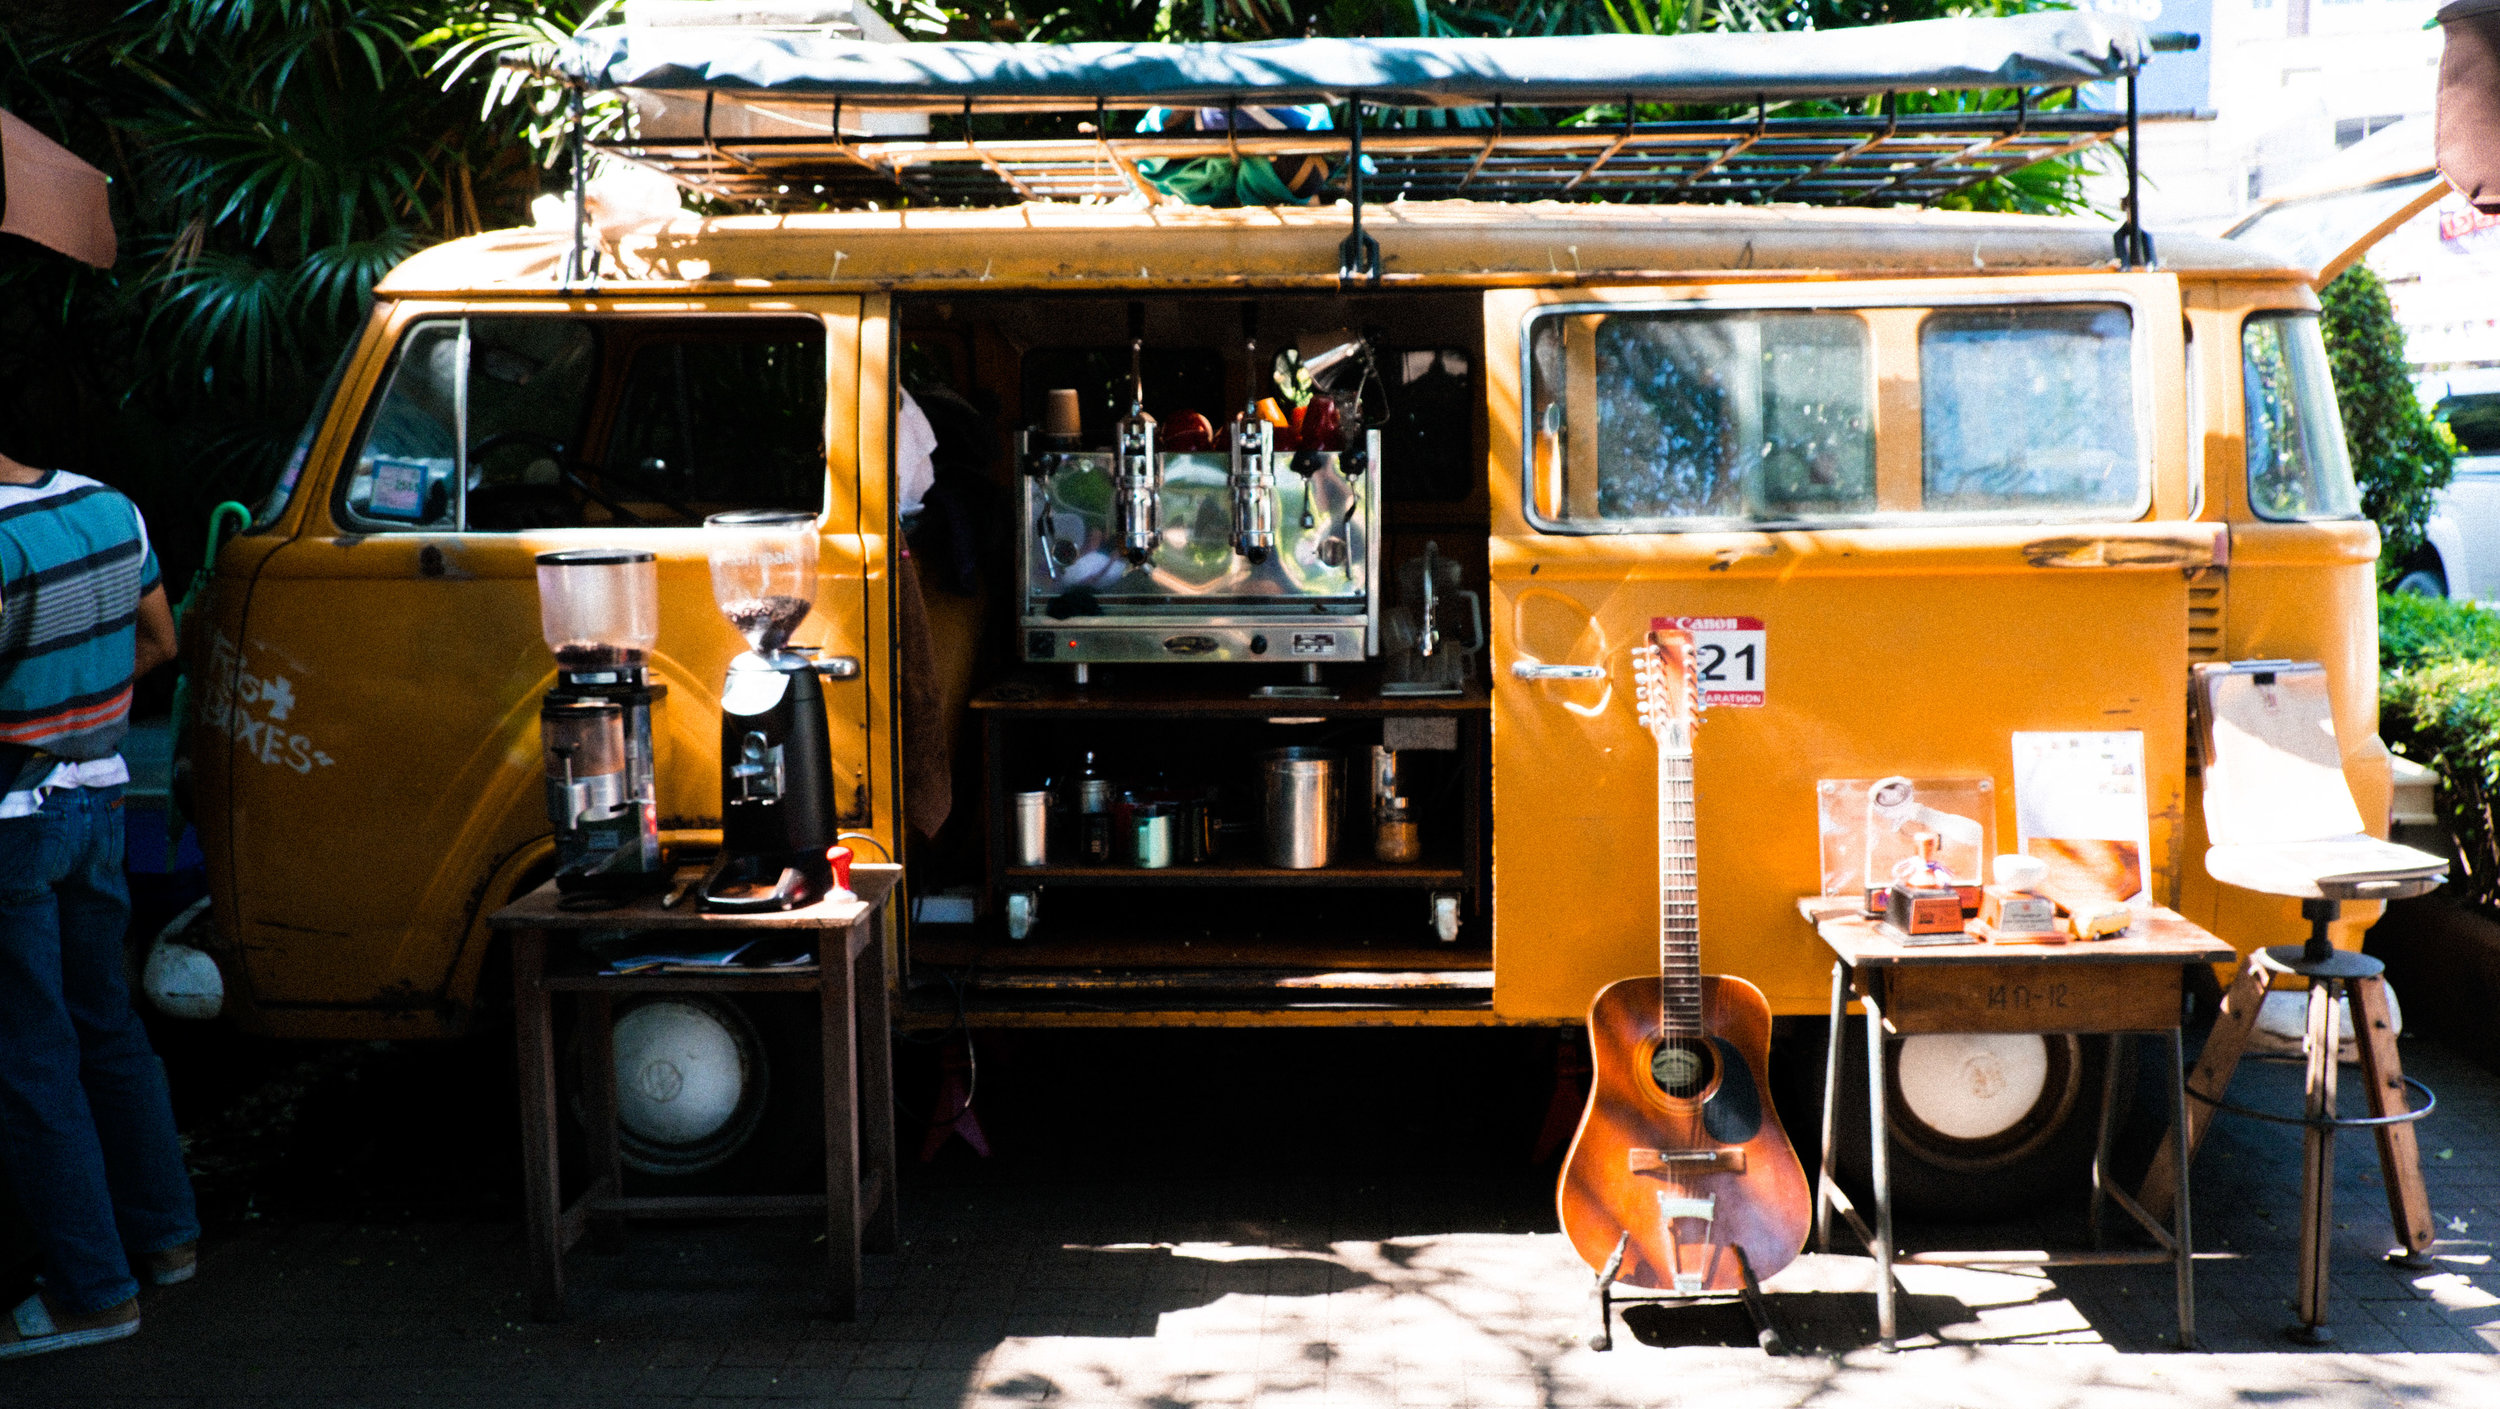 Trailer coffee Chiang Mai. Thailand specialty coffee guide.